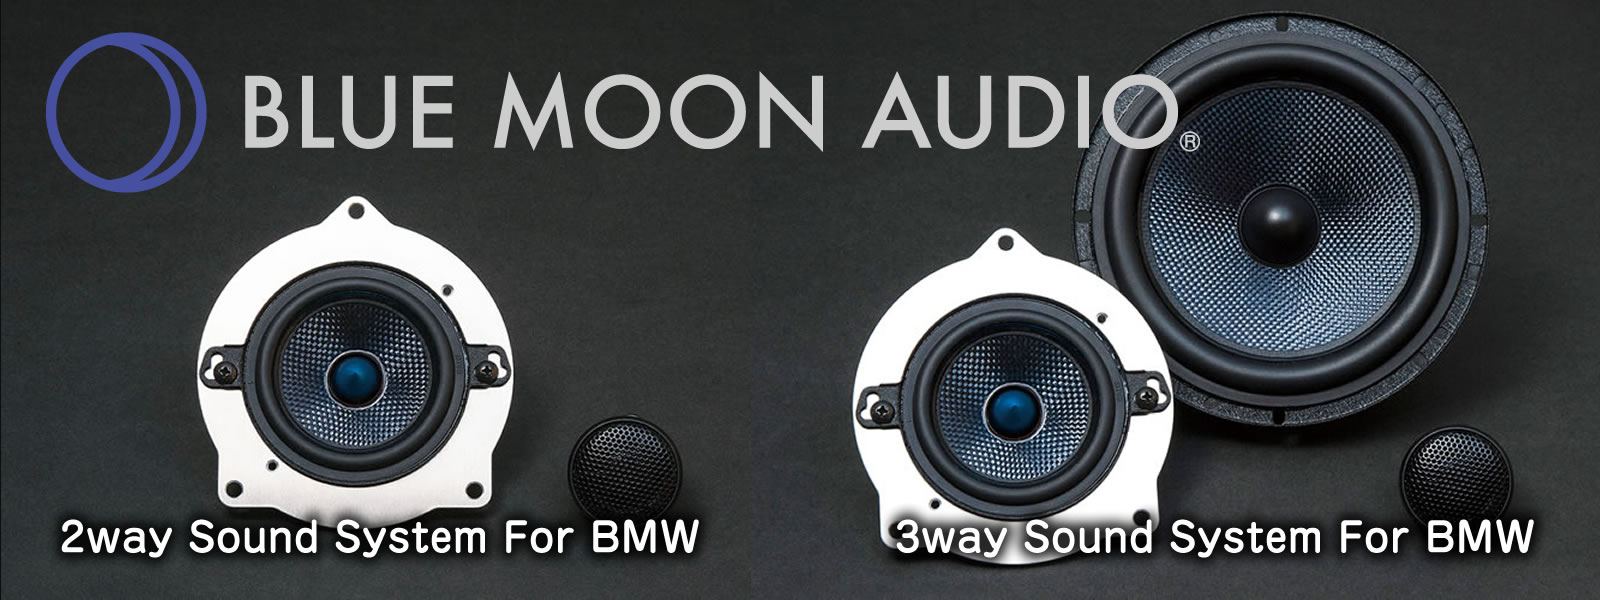 BLUE MOON AUDIO BMW専用システム